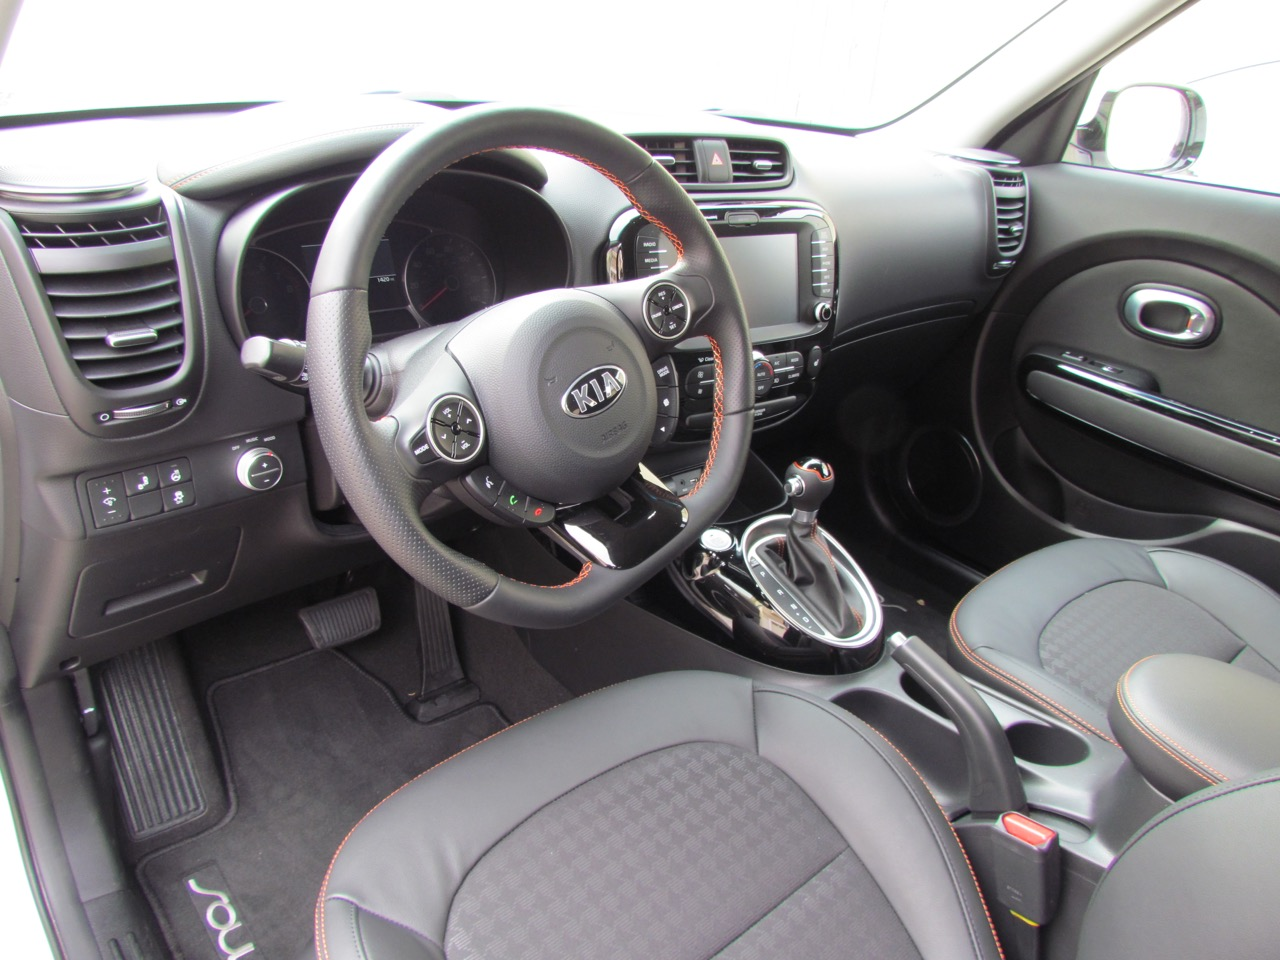 Interior is roomy and comfortable